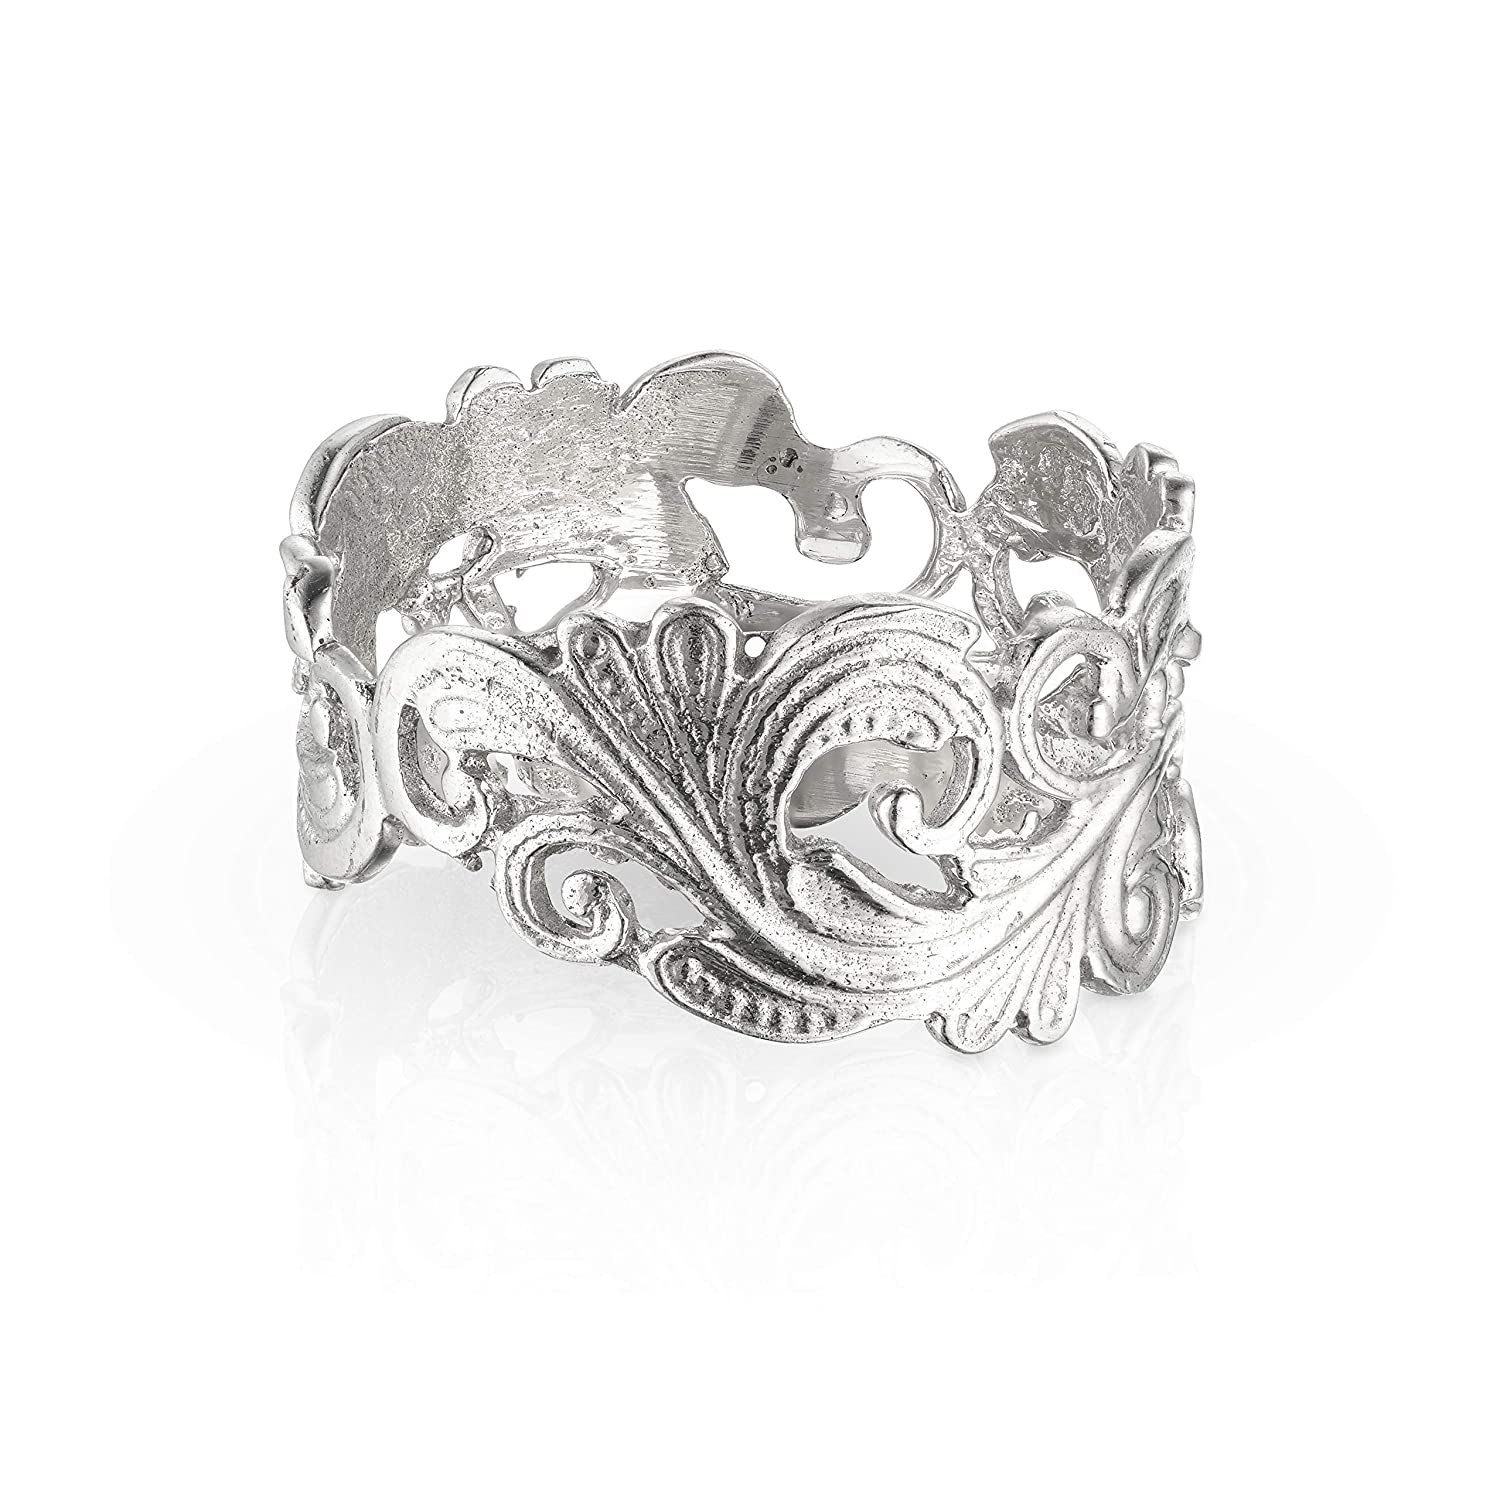 Amazon Com Handmade Sterling Silver Vintage Style Ring For Women Art Deco Lace Anniversary Gift Size 7 5 Handmade